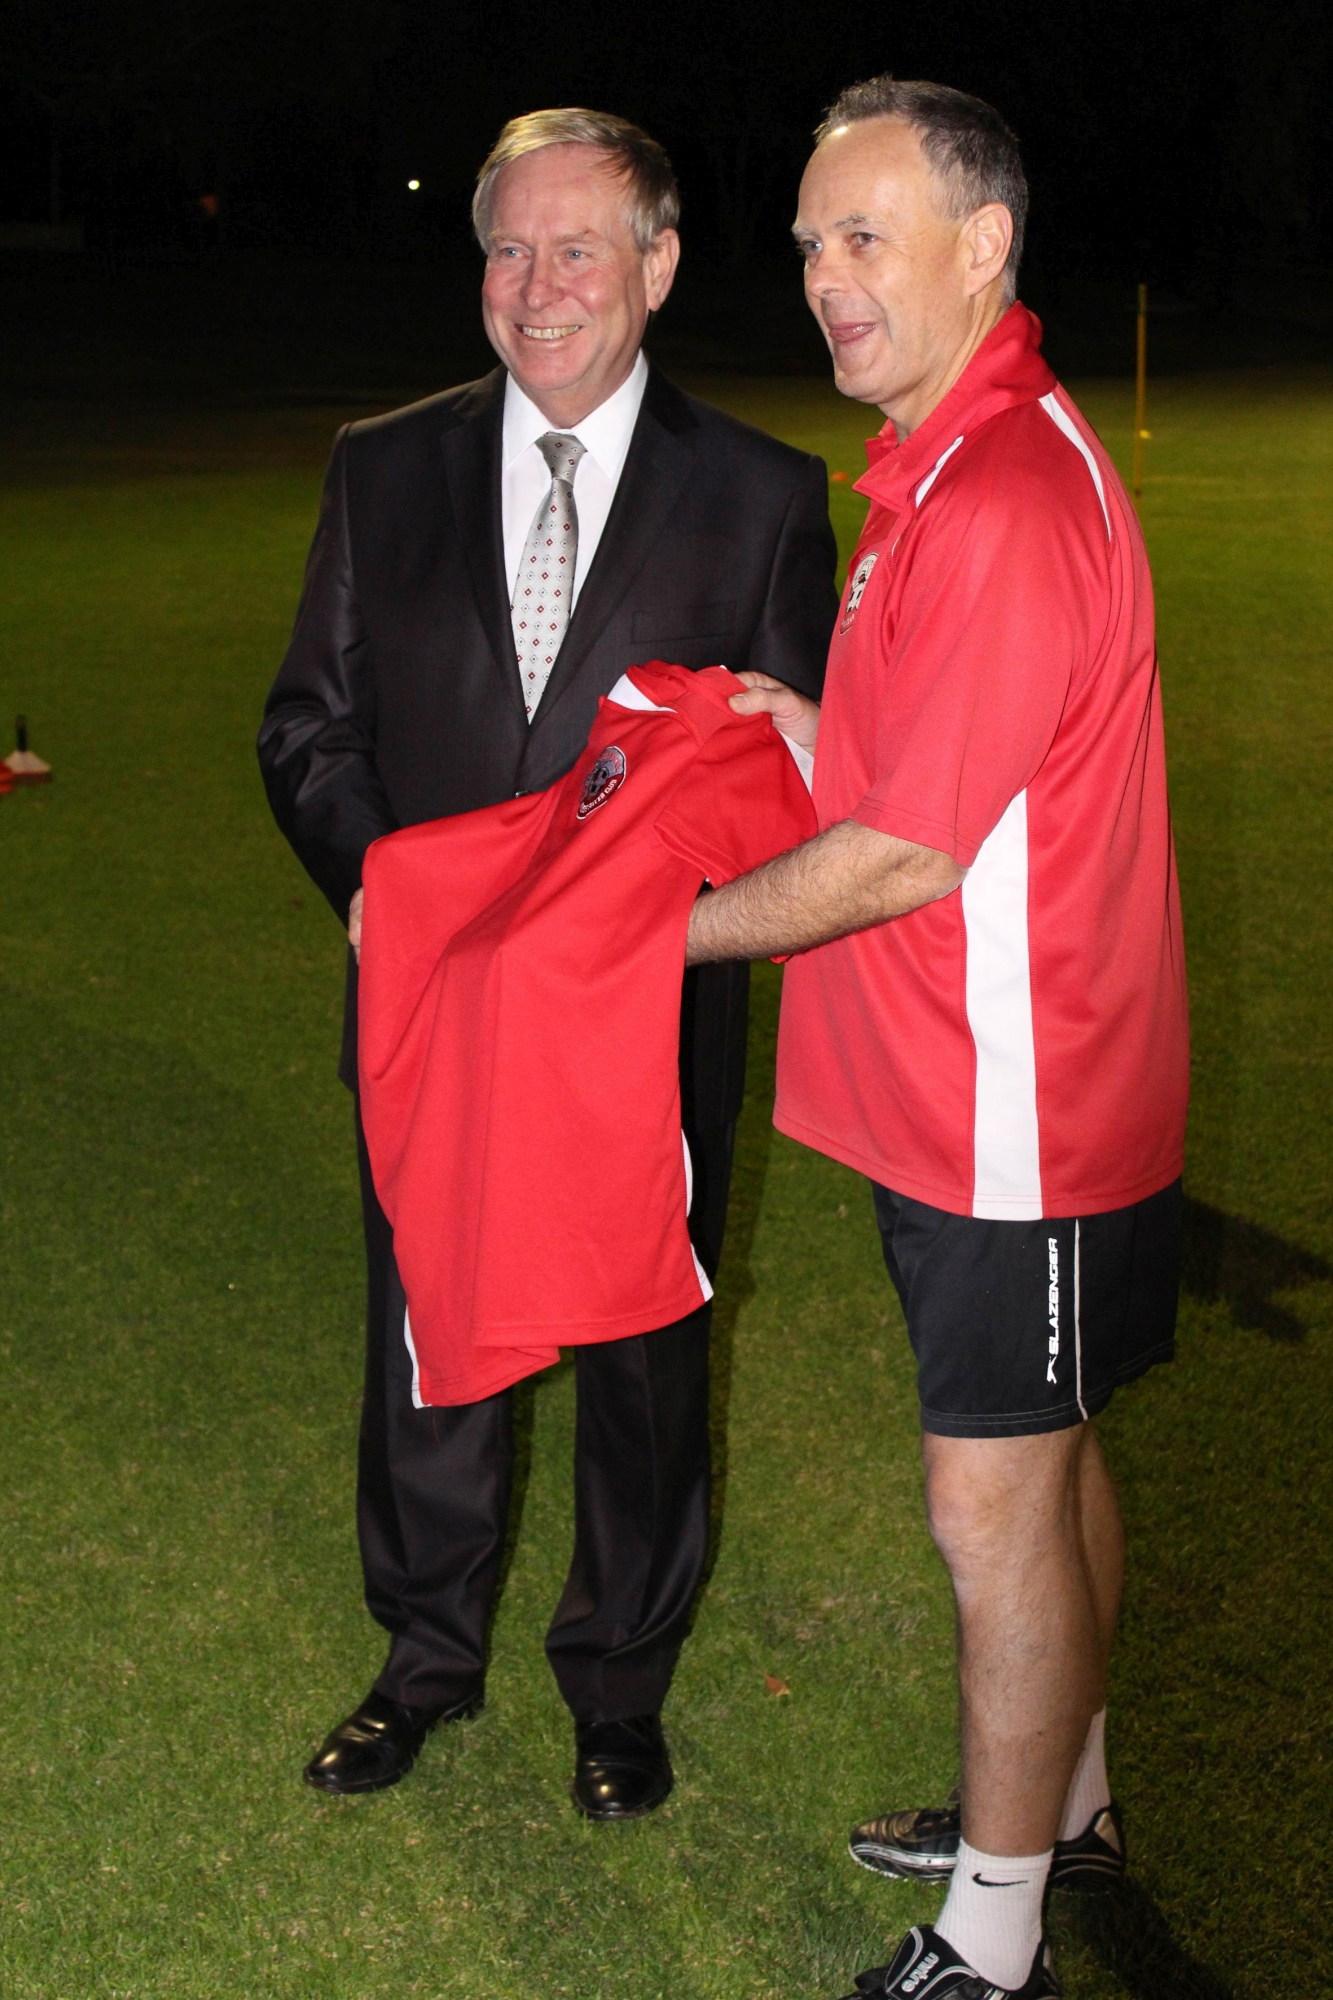 Club president Keith Anderson hands a jersey to the Premier.